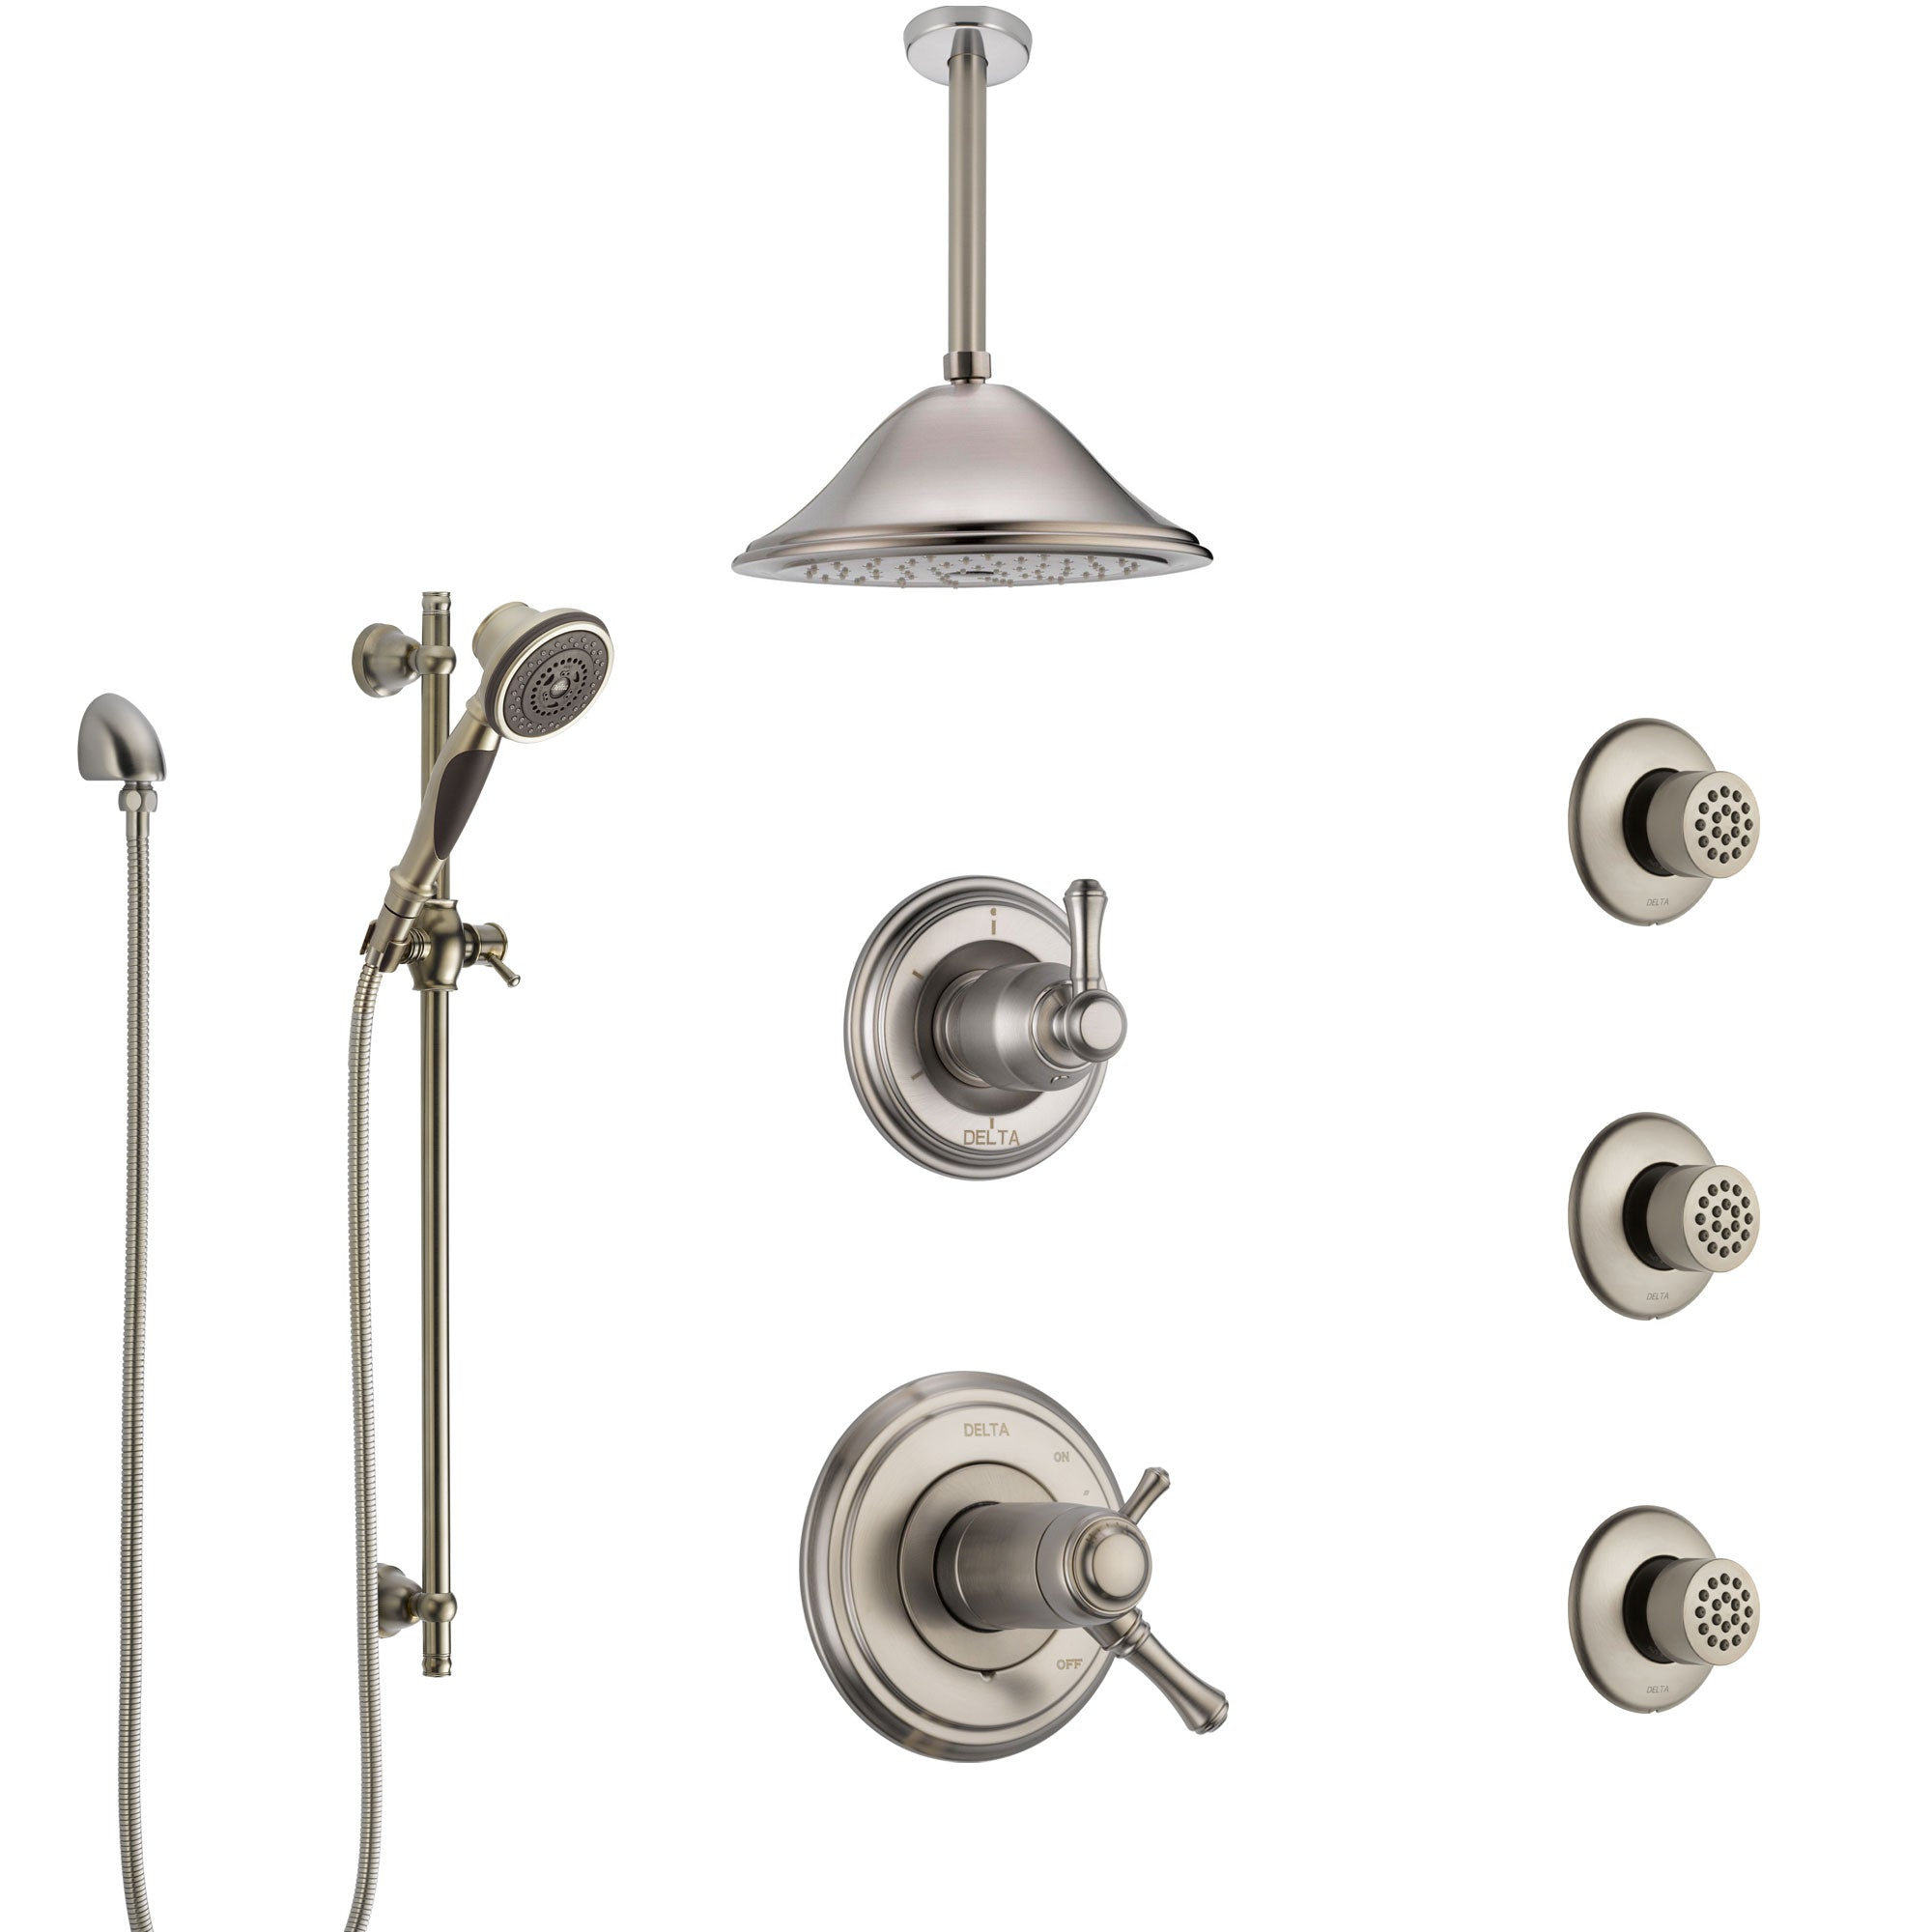 Delta Cassidy Dual Thermostatic Control Stainless Steel Finish Shower System, Diverter, Ceiling Showerhead, 3 Body Sprays, and Hand Shower SS17T971SS5